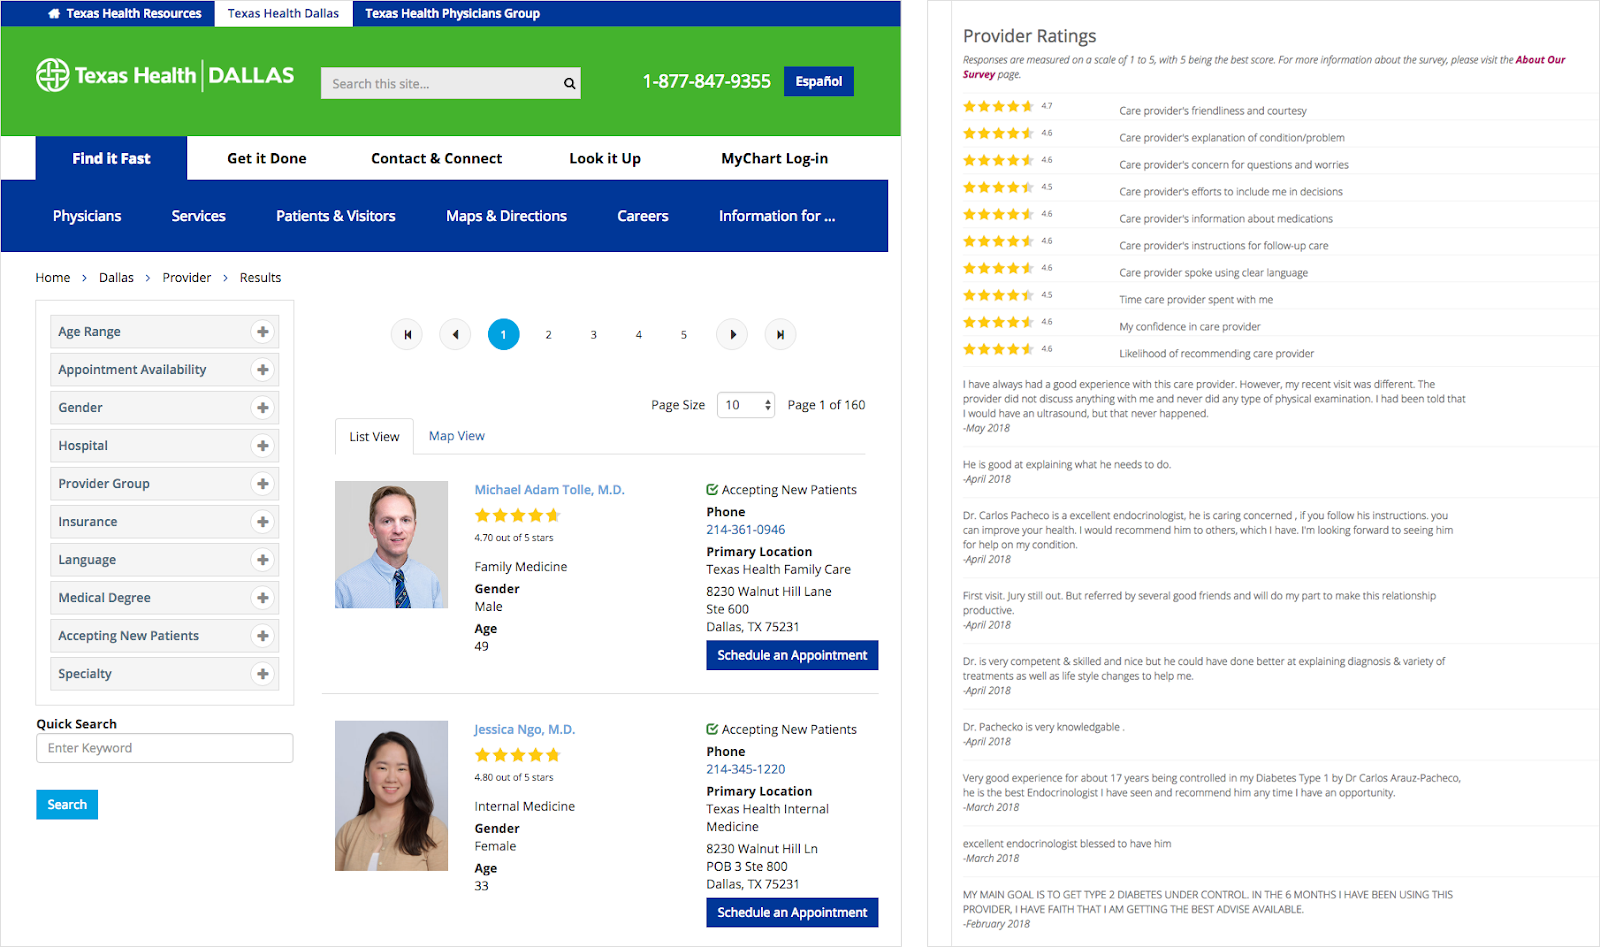 Texas Health Dallas uses star-ratings on their search results pages and doctor bio webpages